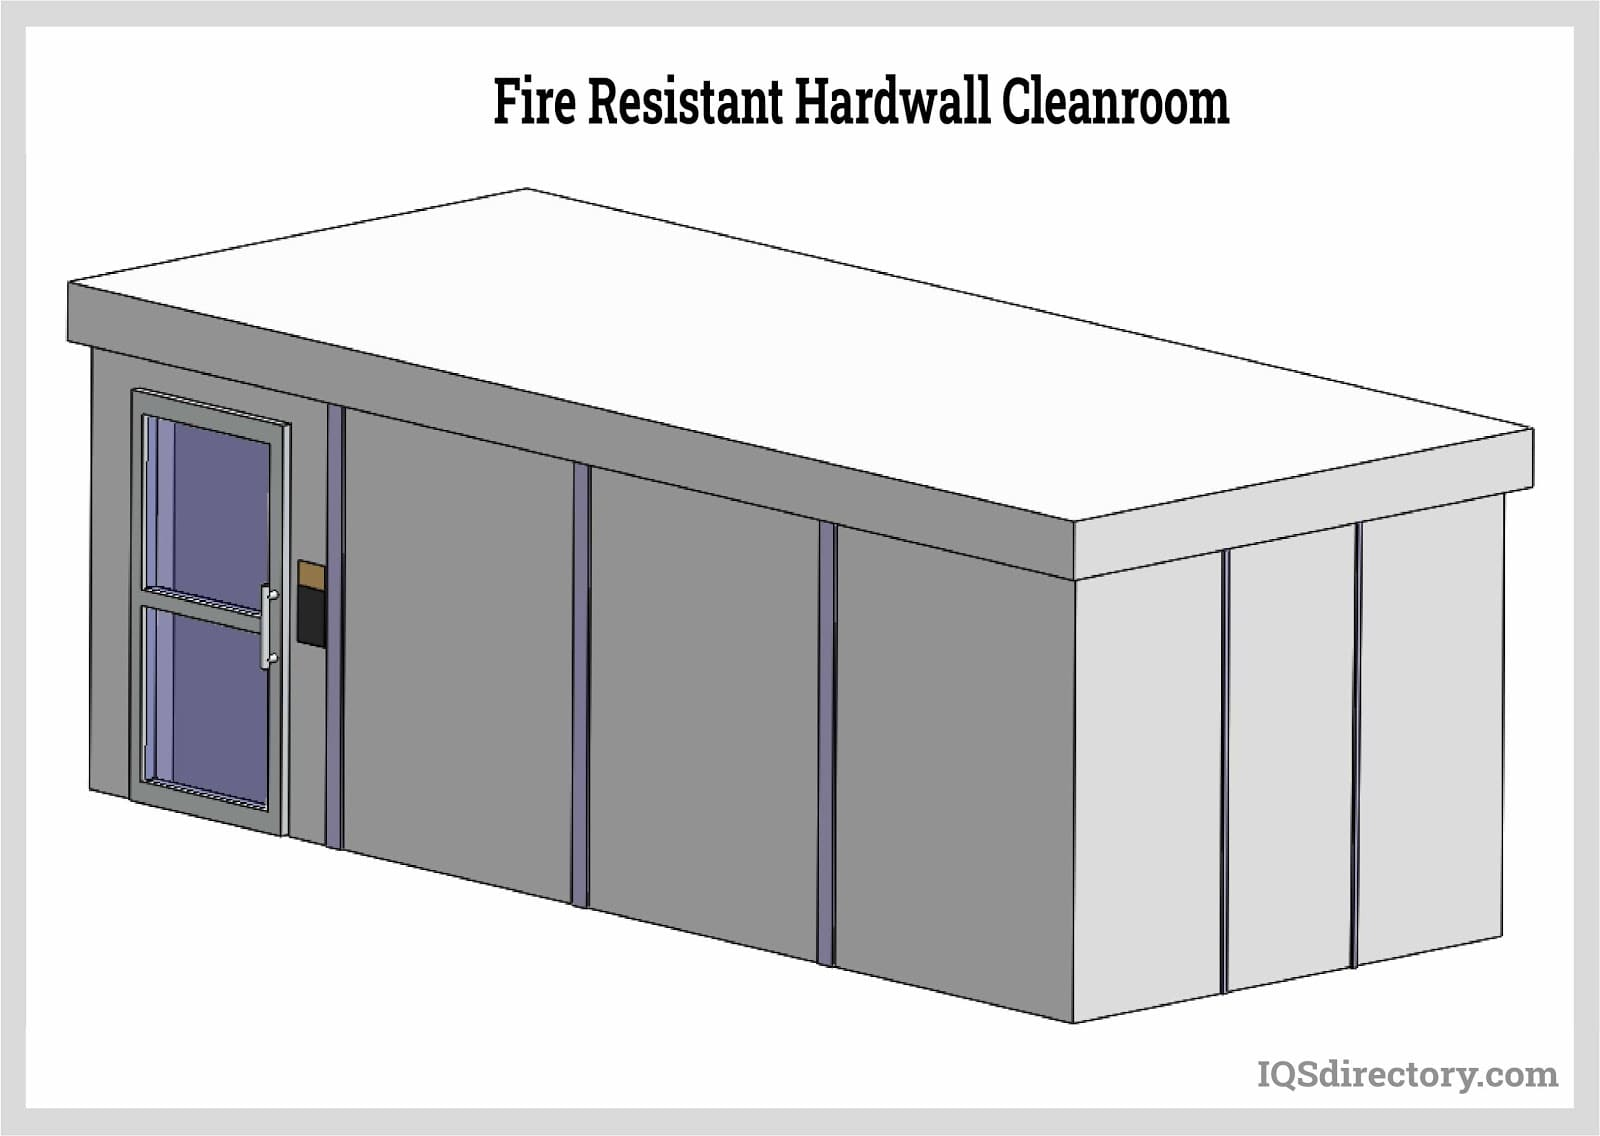 Fire Resistant Hardwall Cleanroom